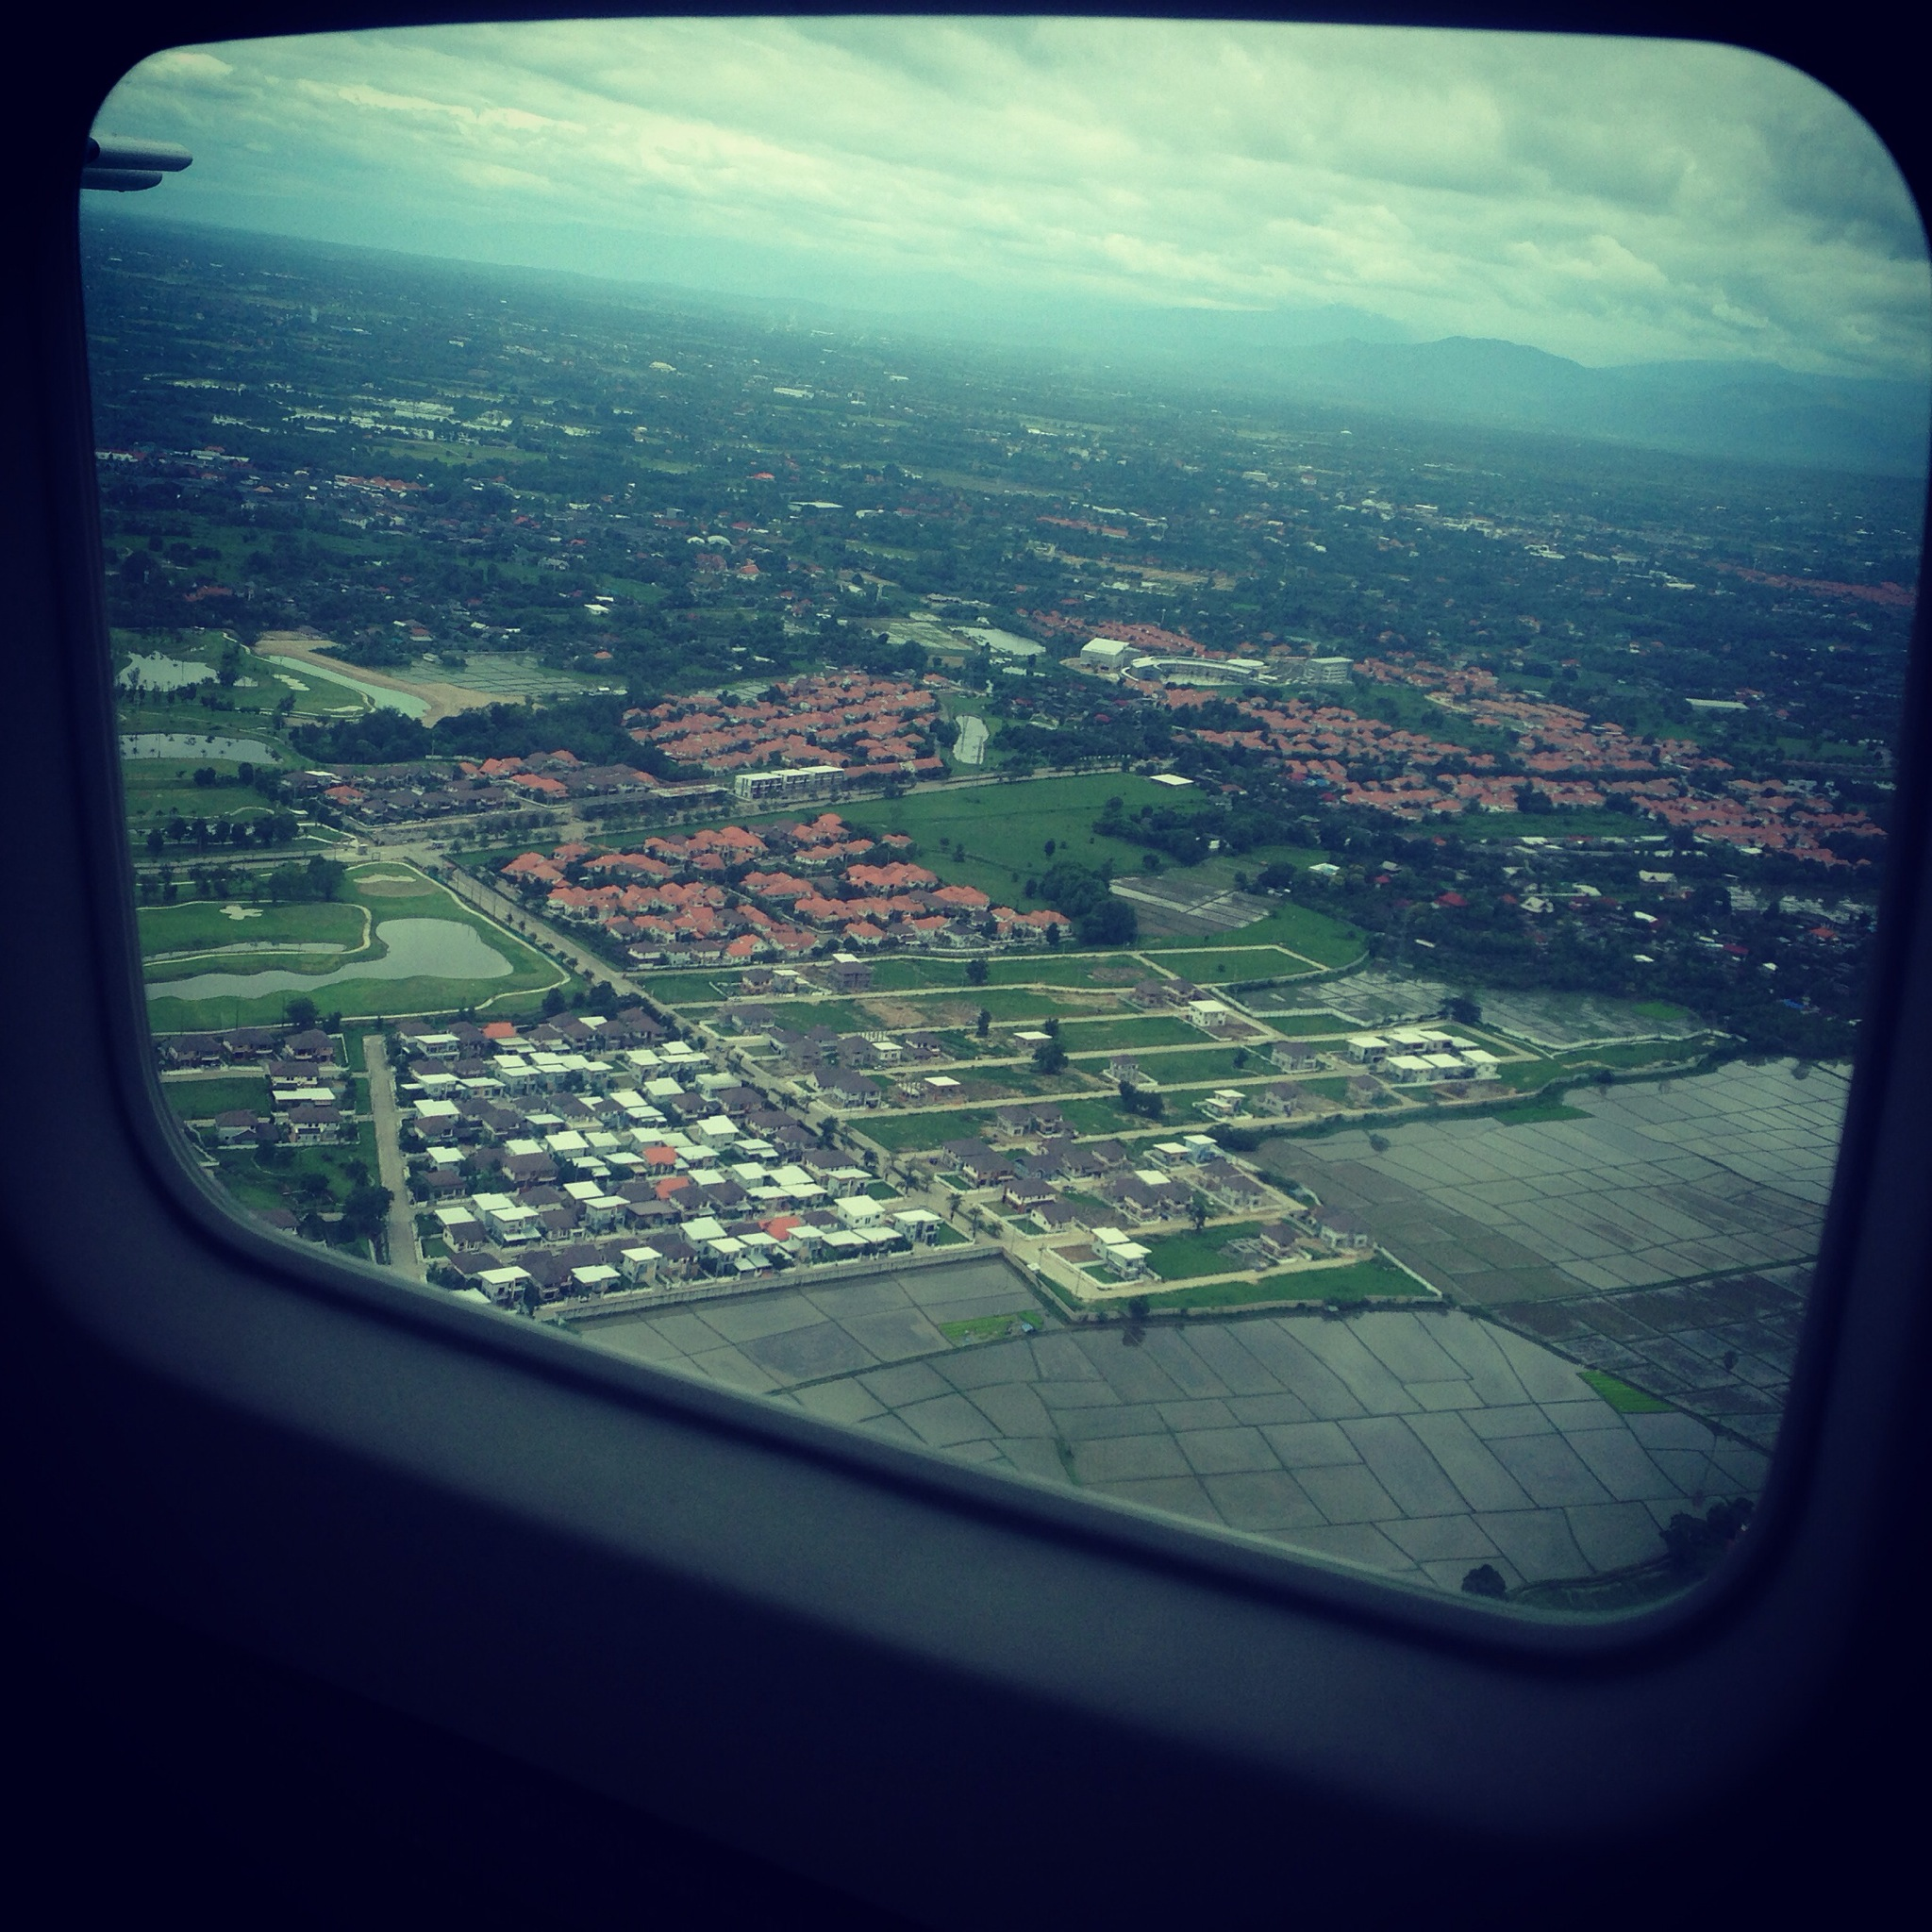 Rice Fields and Housing Estates